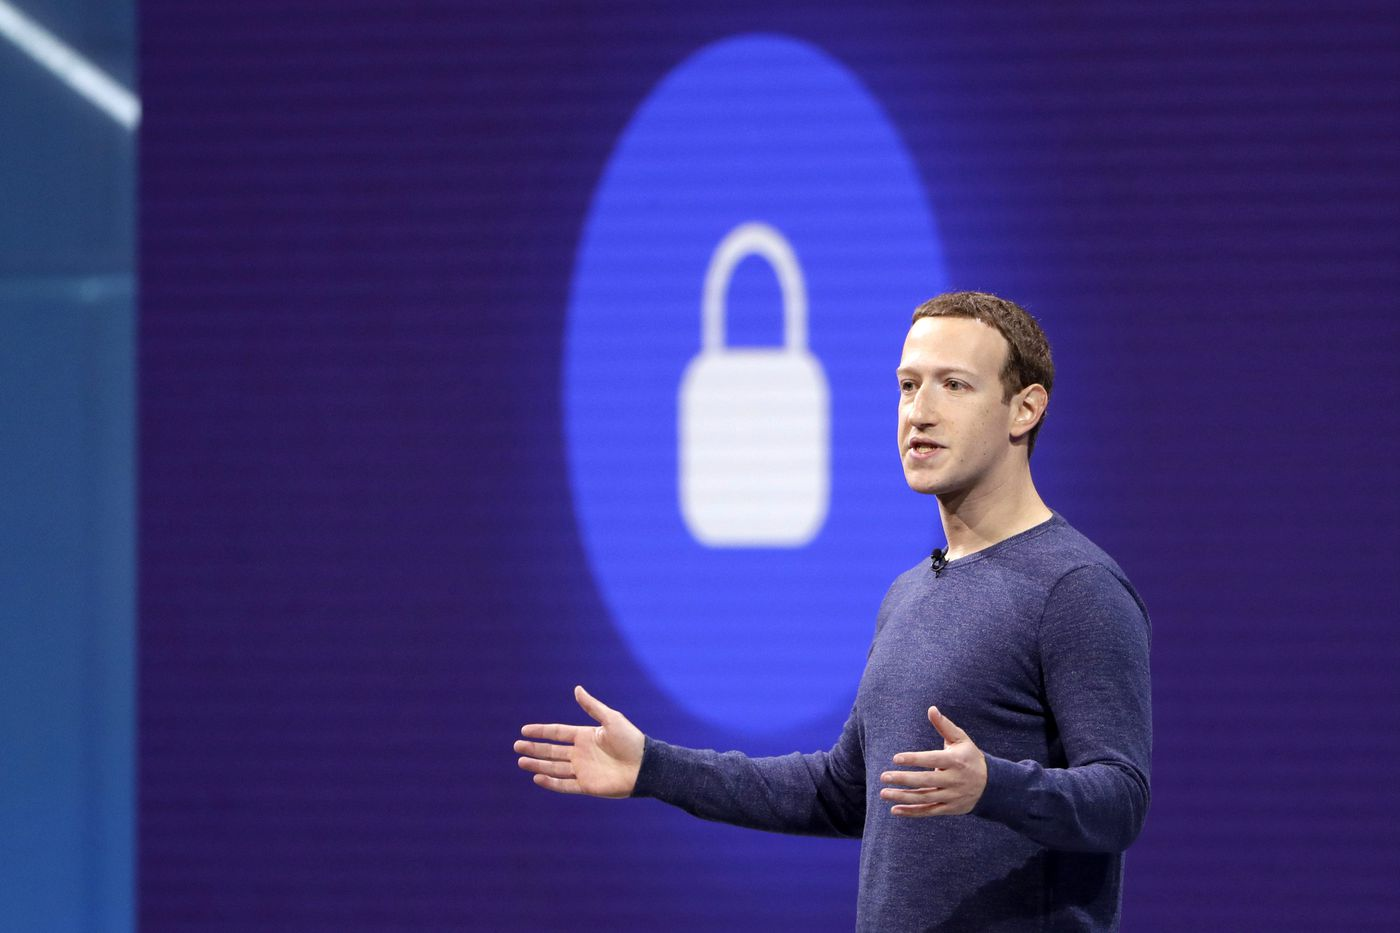 Facebook says 50 million accounts affected by 'security issue'